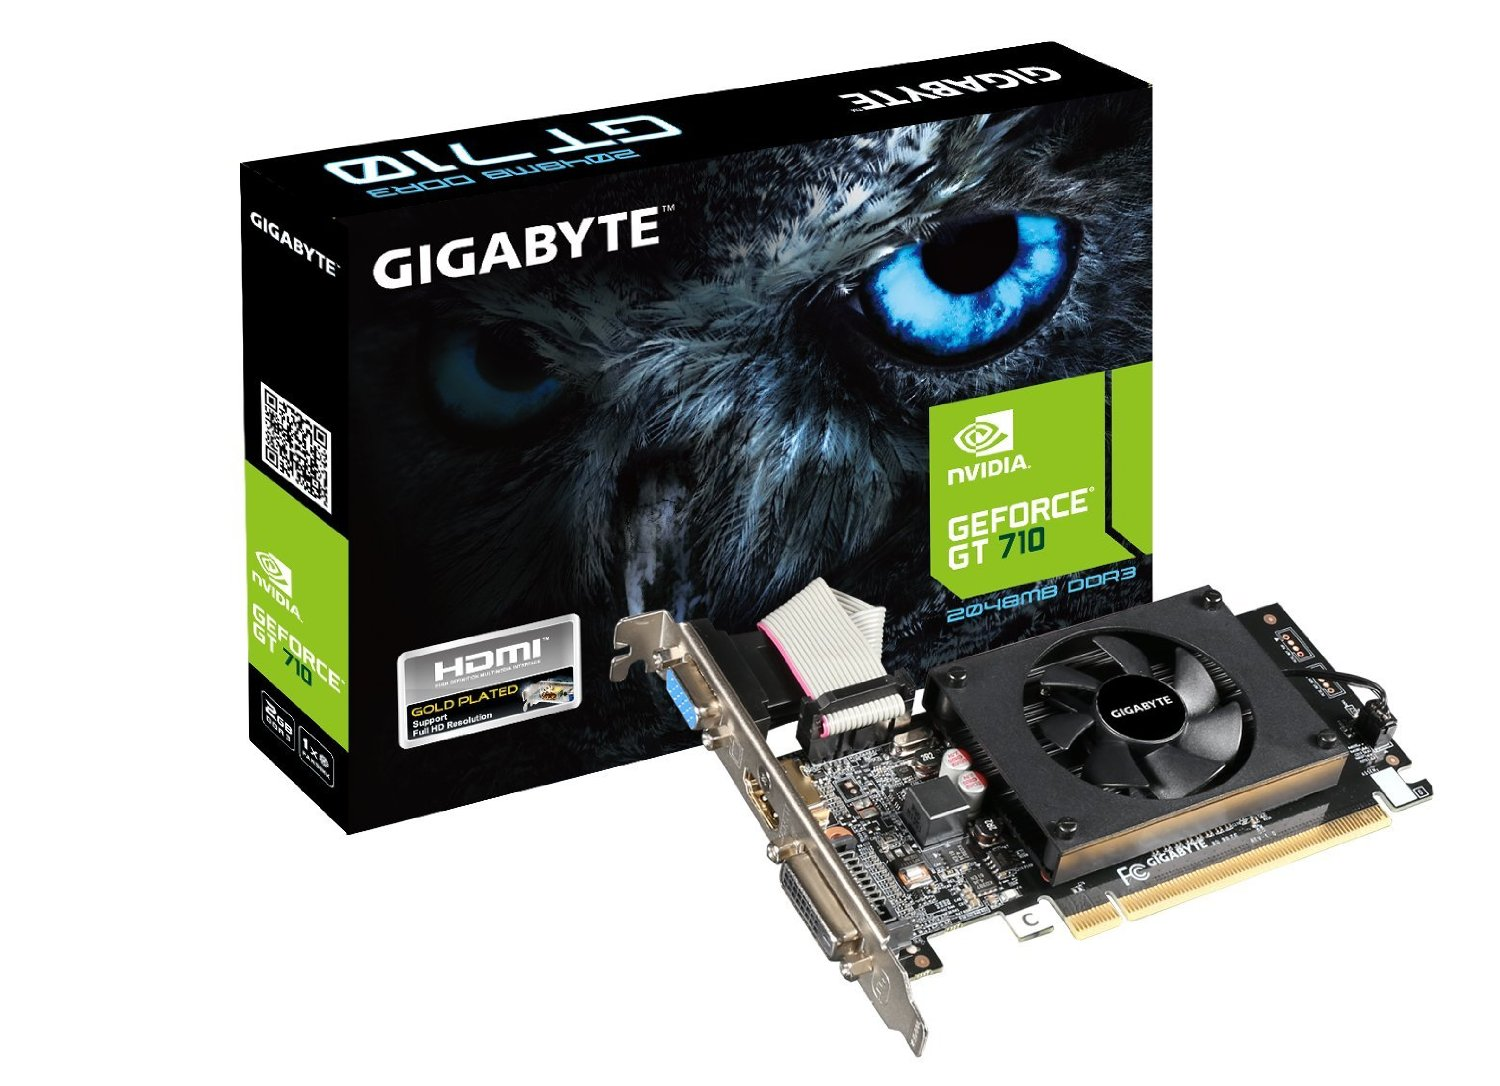 Graphics Card Black Friday Deals, Sales & Ads